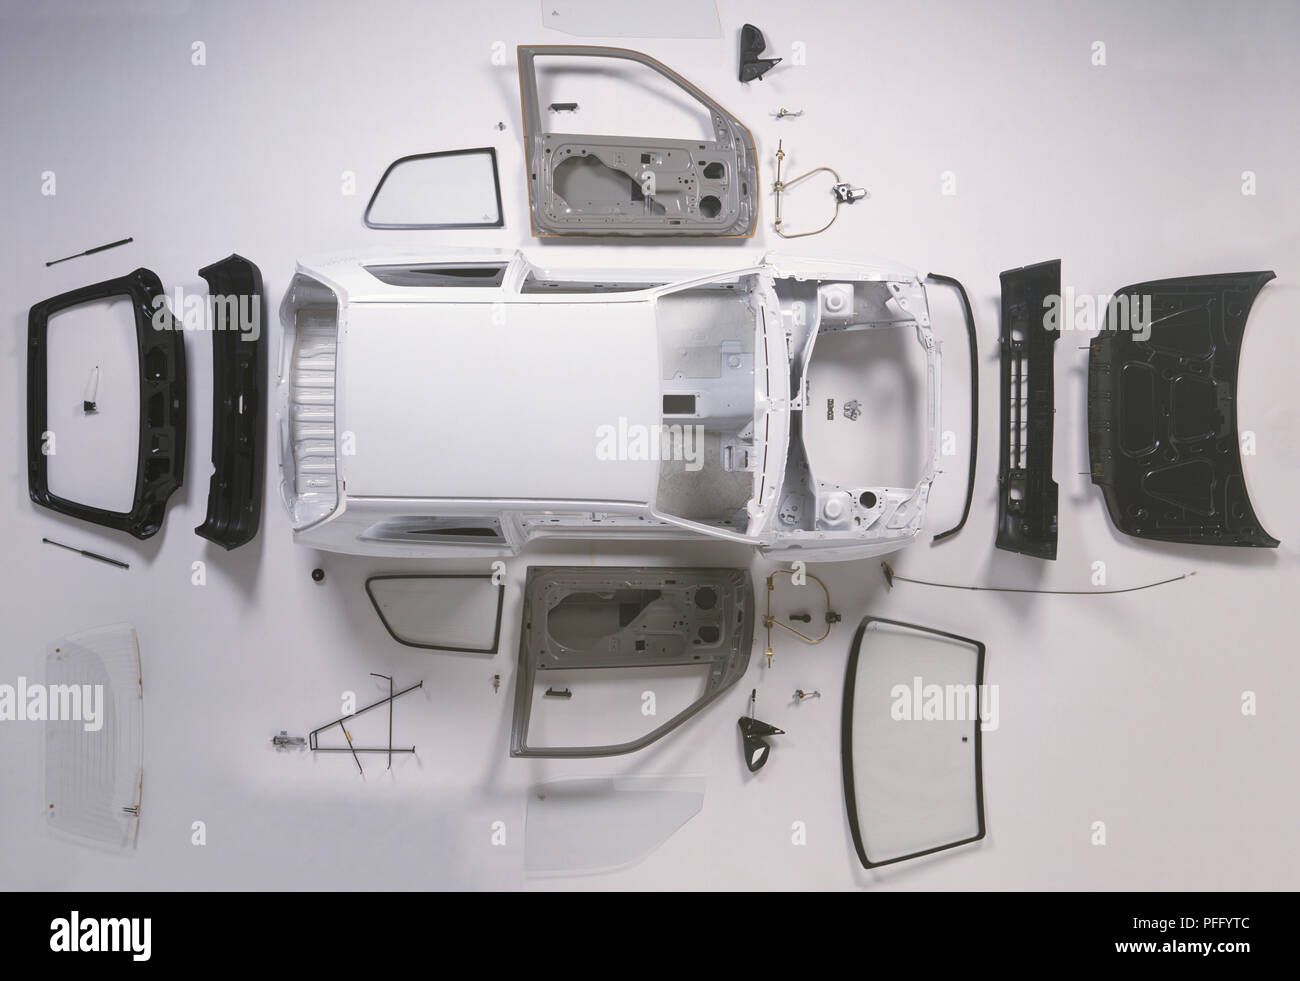 Above view of the bodywork of a small car. - Stock Image